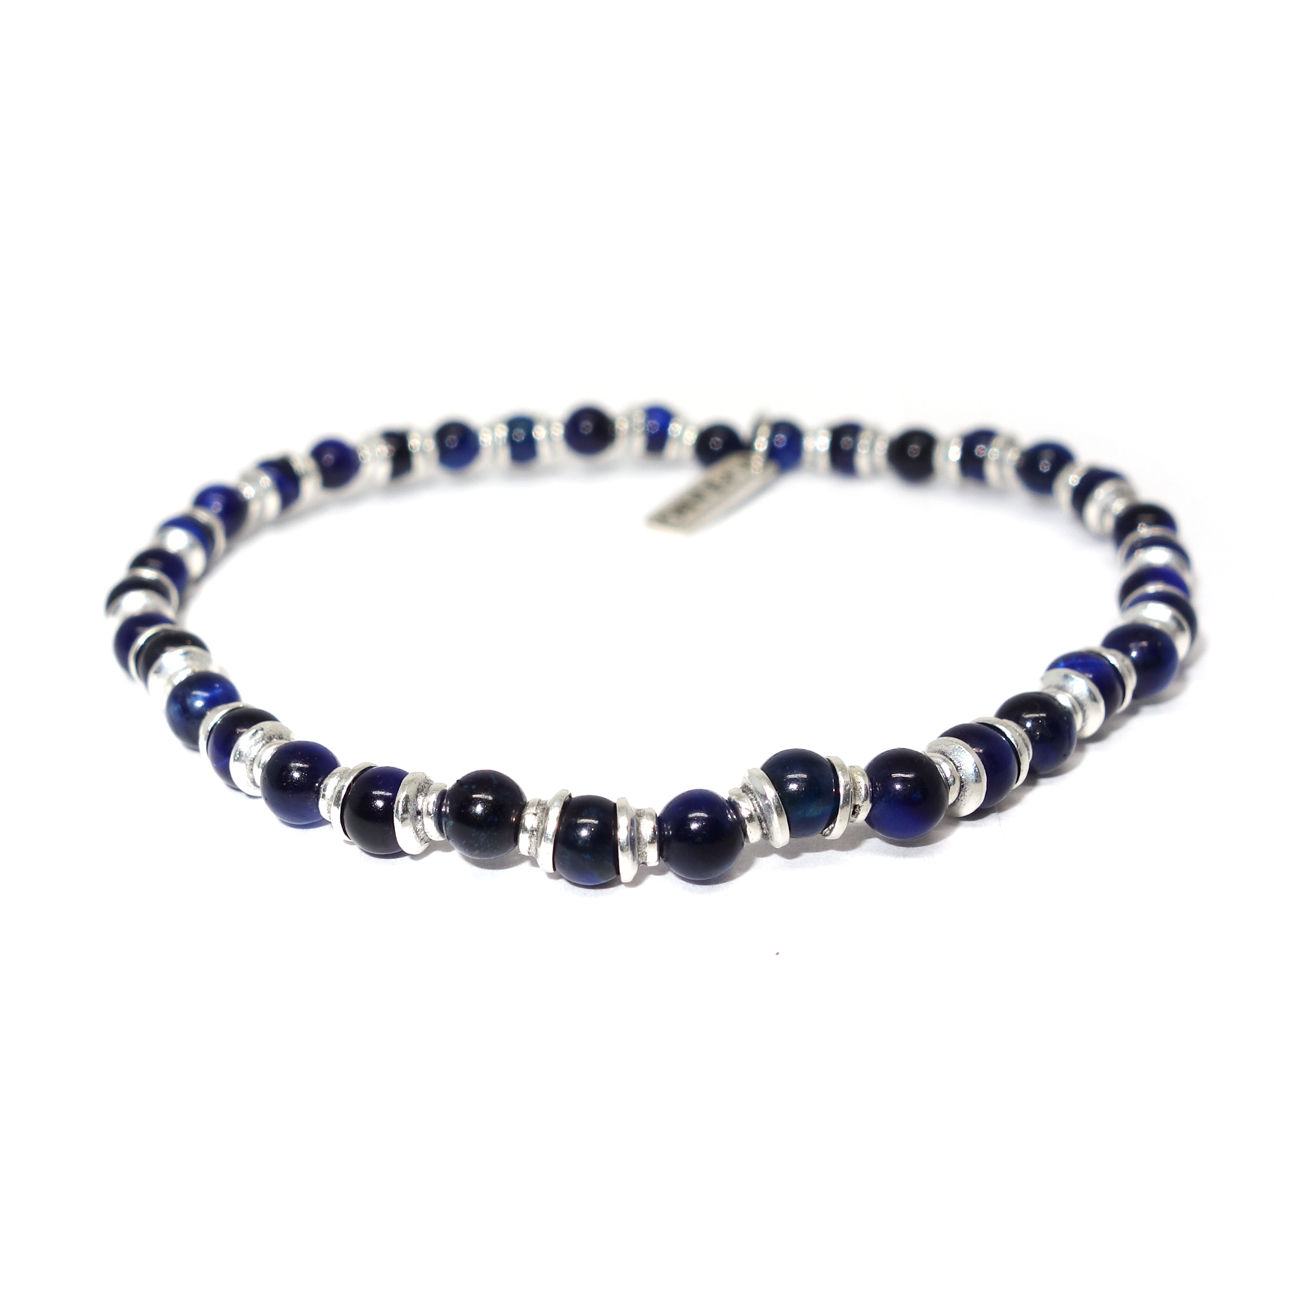 4mm Gemstone Beaded Bracelet